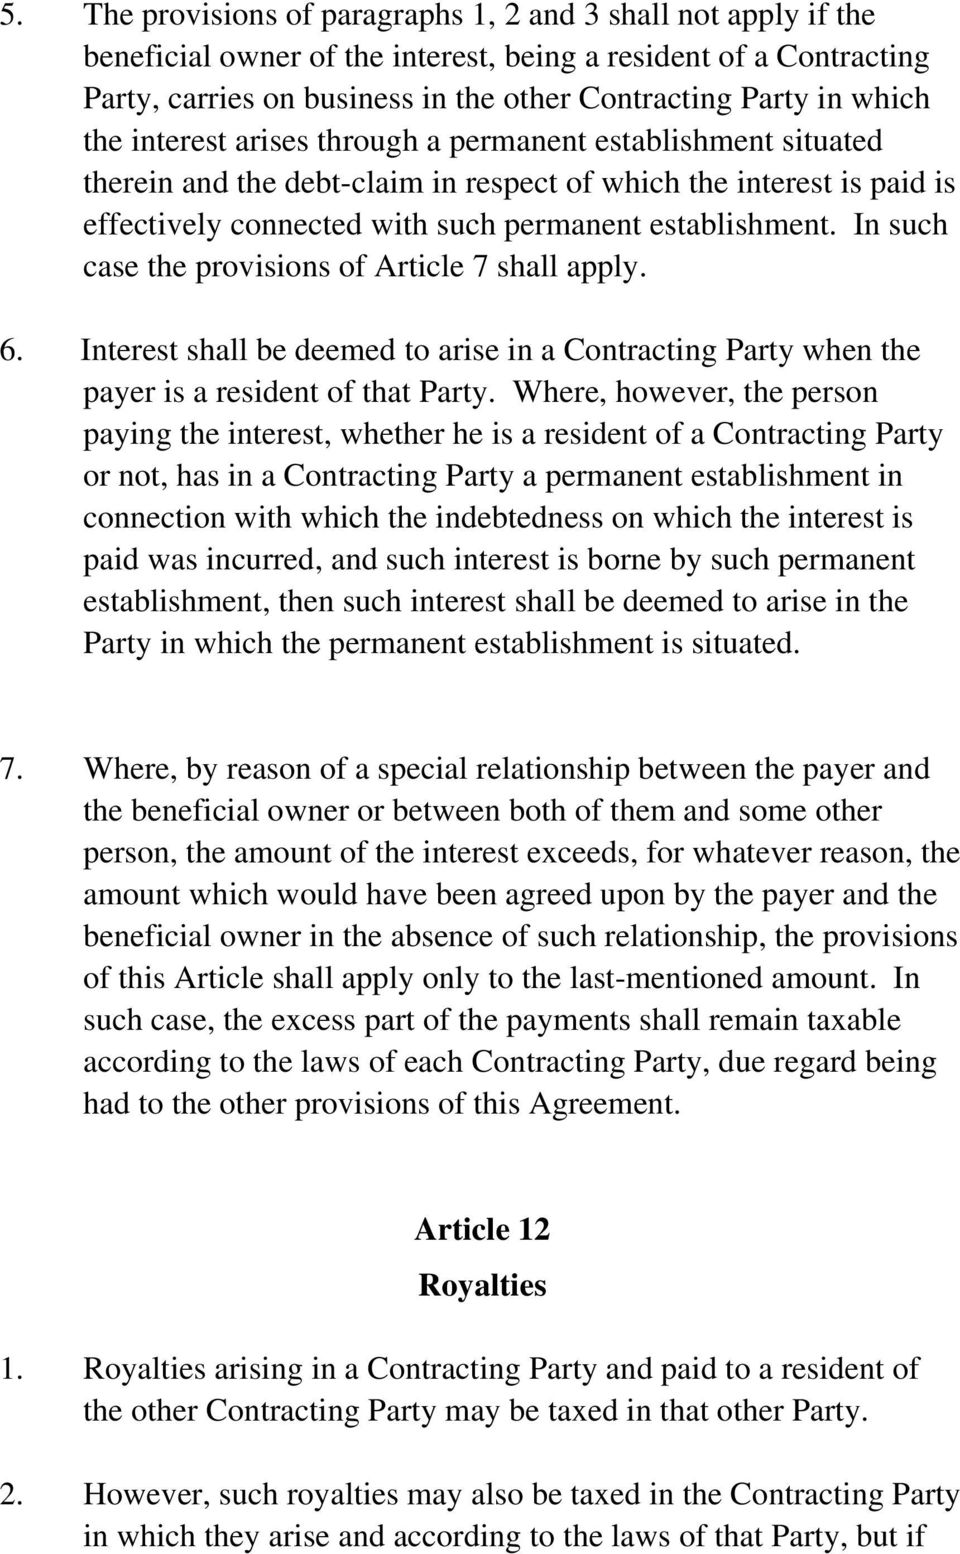 In such case the provisions of Article 7 shall apply. 6. Interest shall be deemed to arise in a Contracting Party when the payer is a resident of that Party.